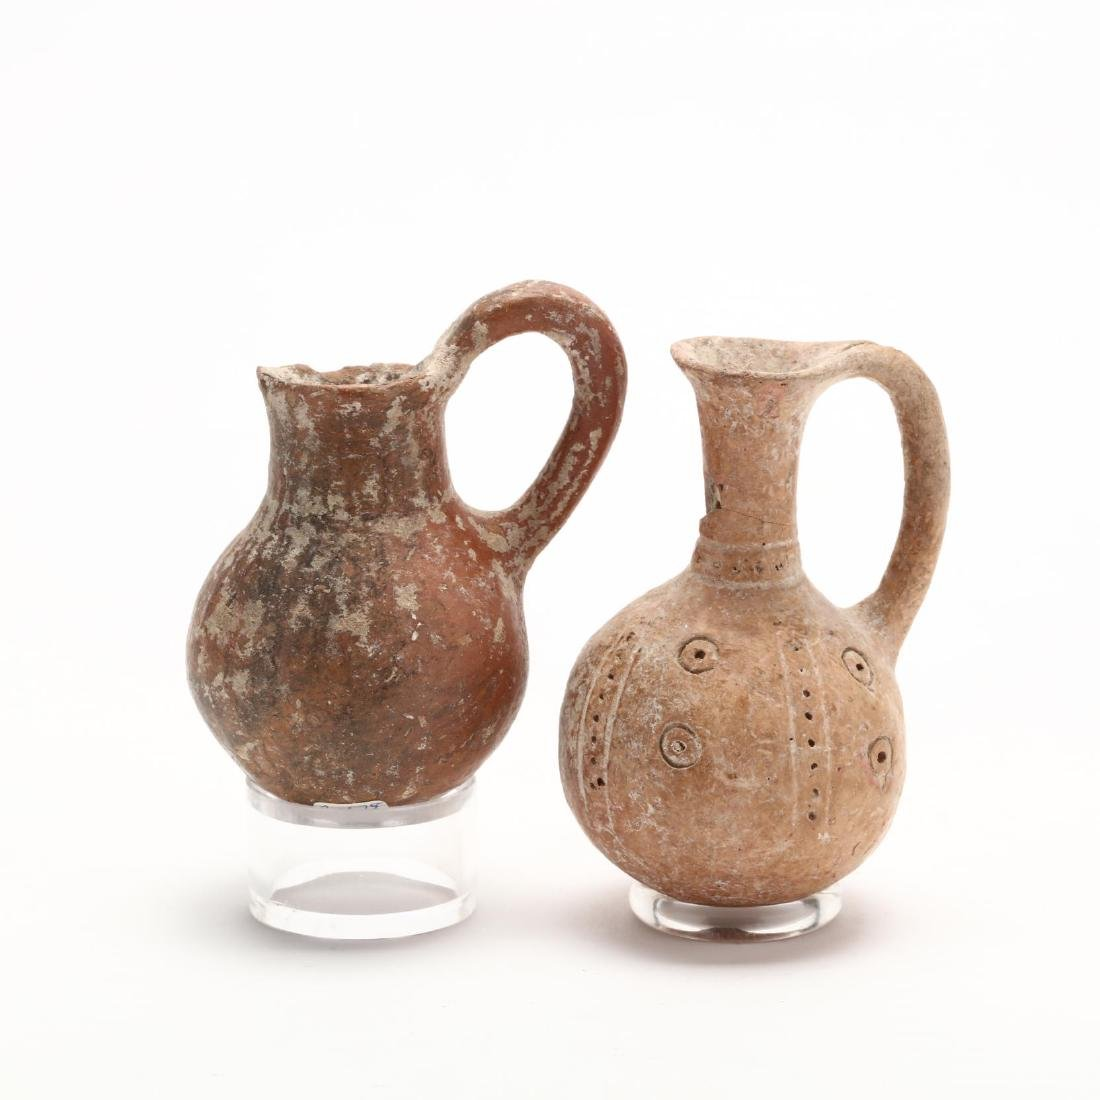 Two Cypriot Middle Bronze Age Red Ware Juglets - 3